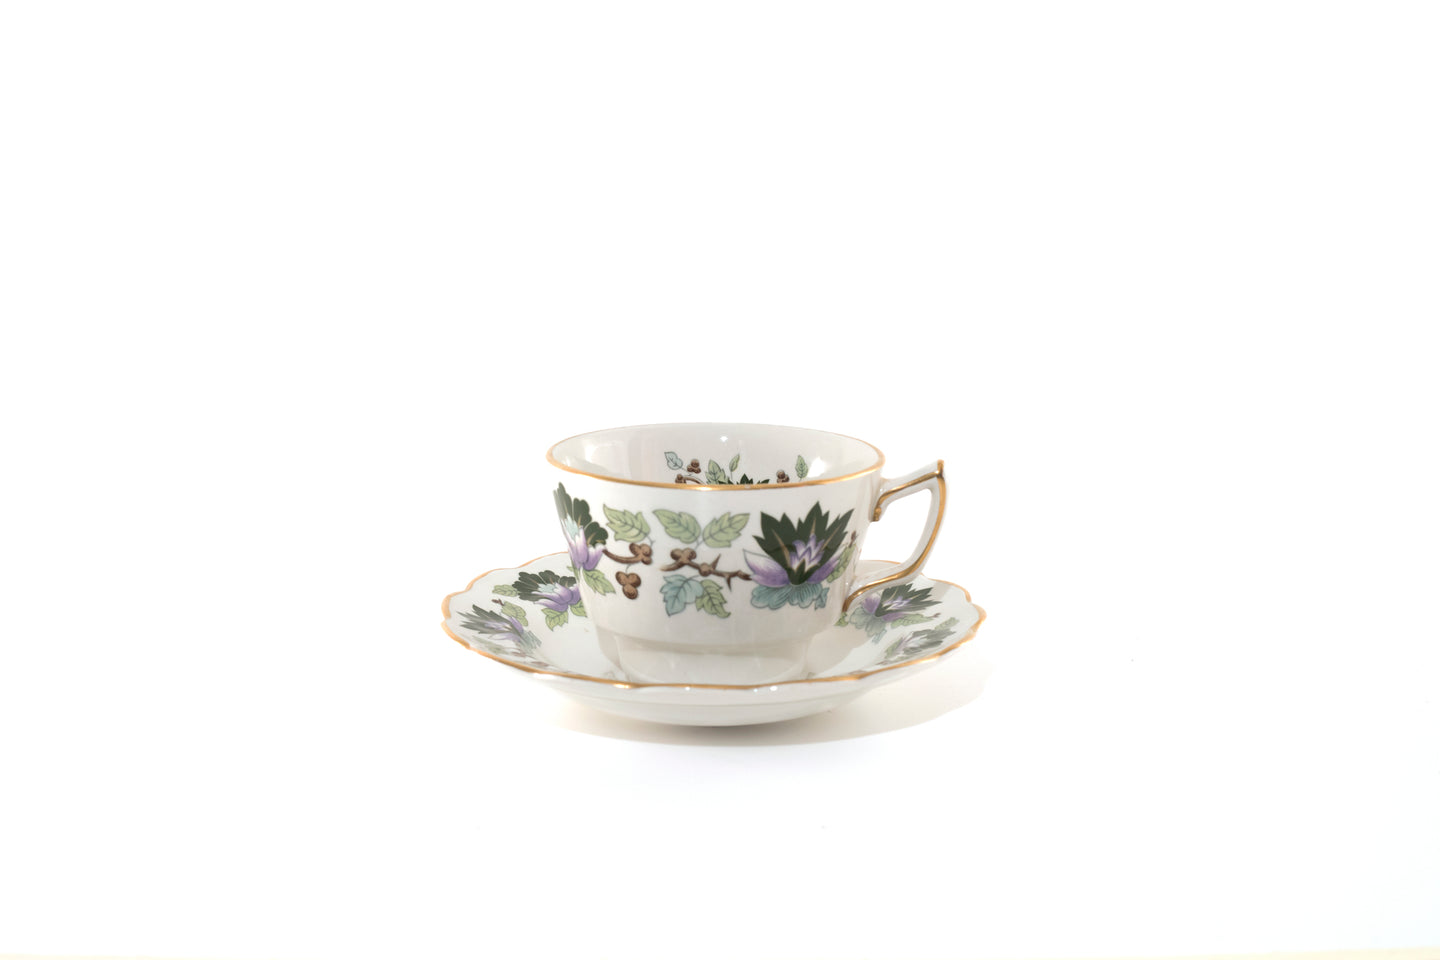 white vintage tea special occasion special siter sip purple print party mother morning loose leaf idea green grandmother gift fresh flower floral fika english elegant decorative classic chic chai ceremony cafe bar